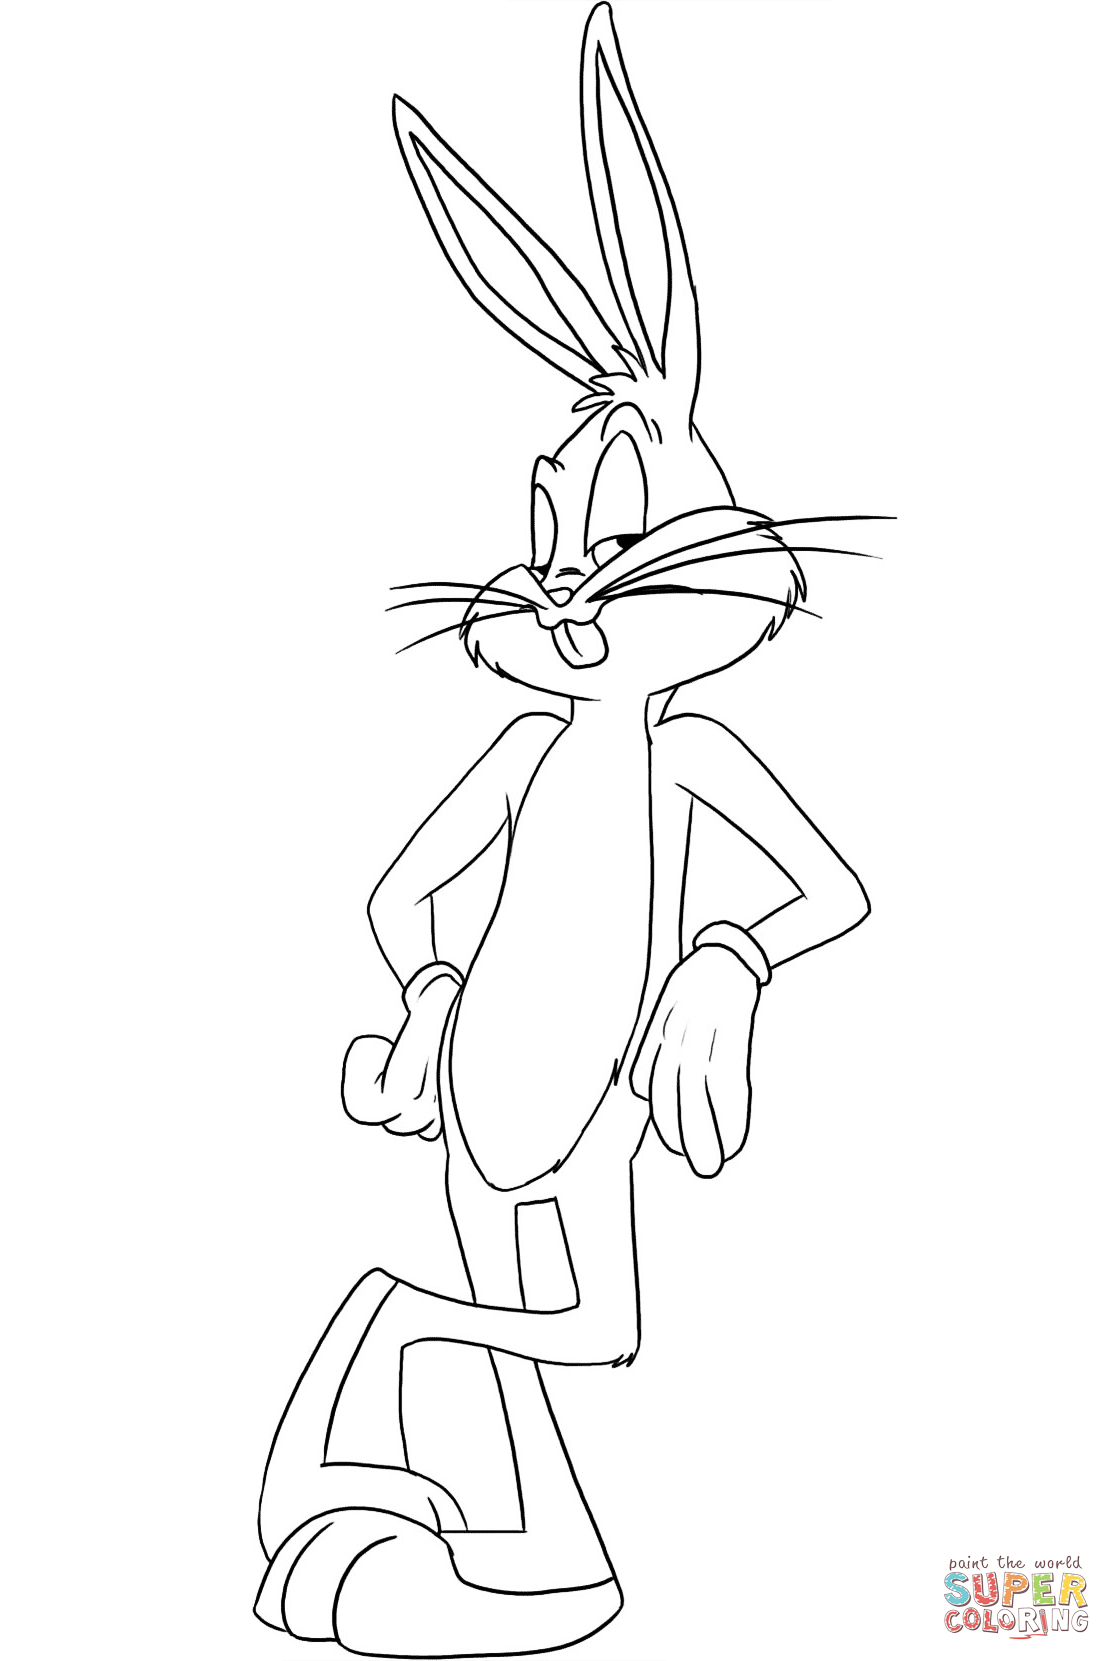 Bugs Bunny   My Art Work In 2019   Pinterest   Bunny Coloring Pages - Free Printable Bugs Bunny Coloring Pages